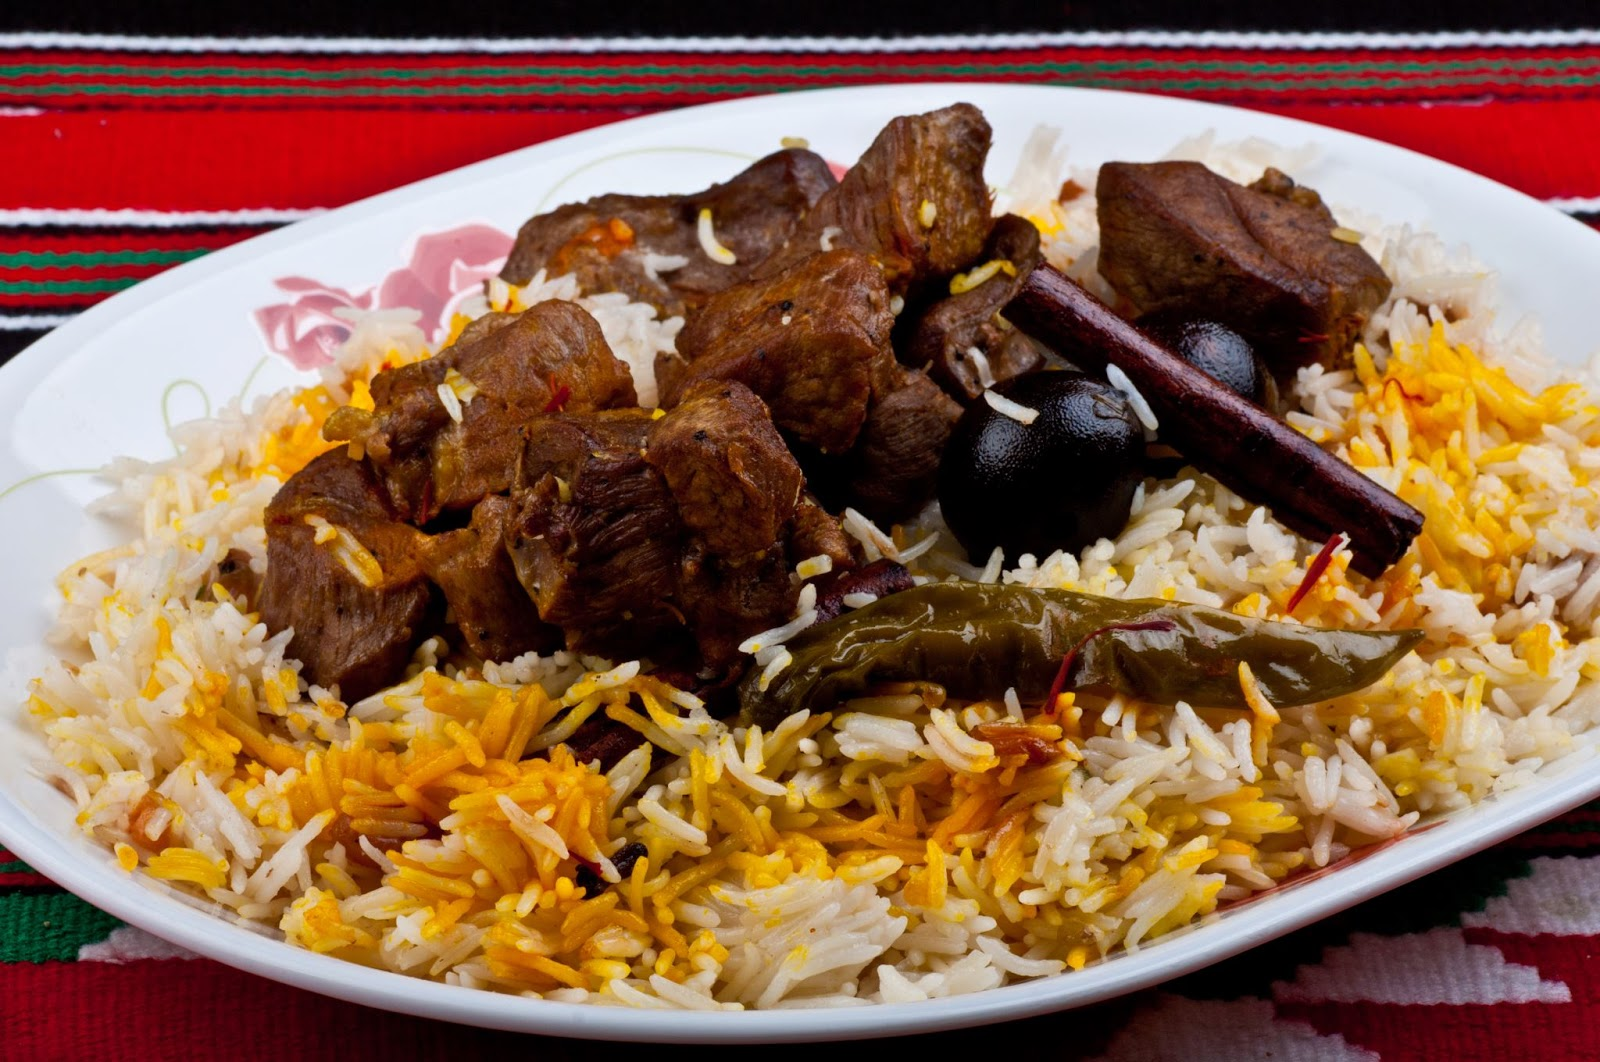 Flavours of asia lamb mandi with saffron basmati rice and raisins lamb mandi with saffron basmati rice and raisins chef ammar alis recipe for those who love arabic food forumfinder